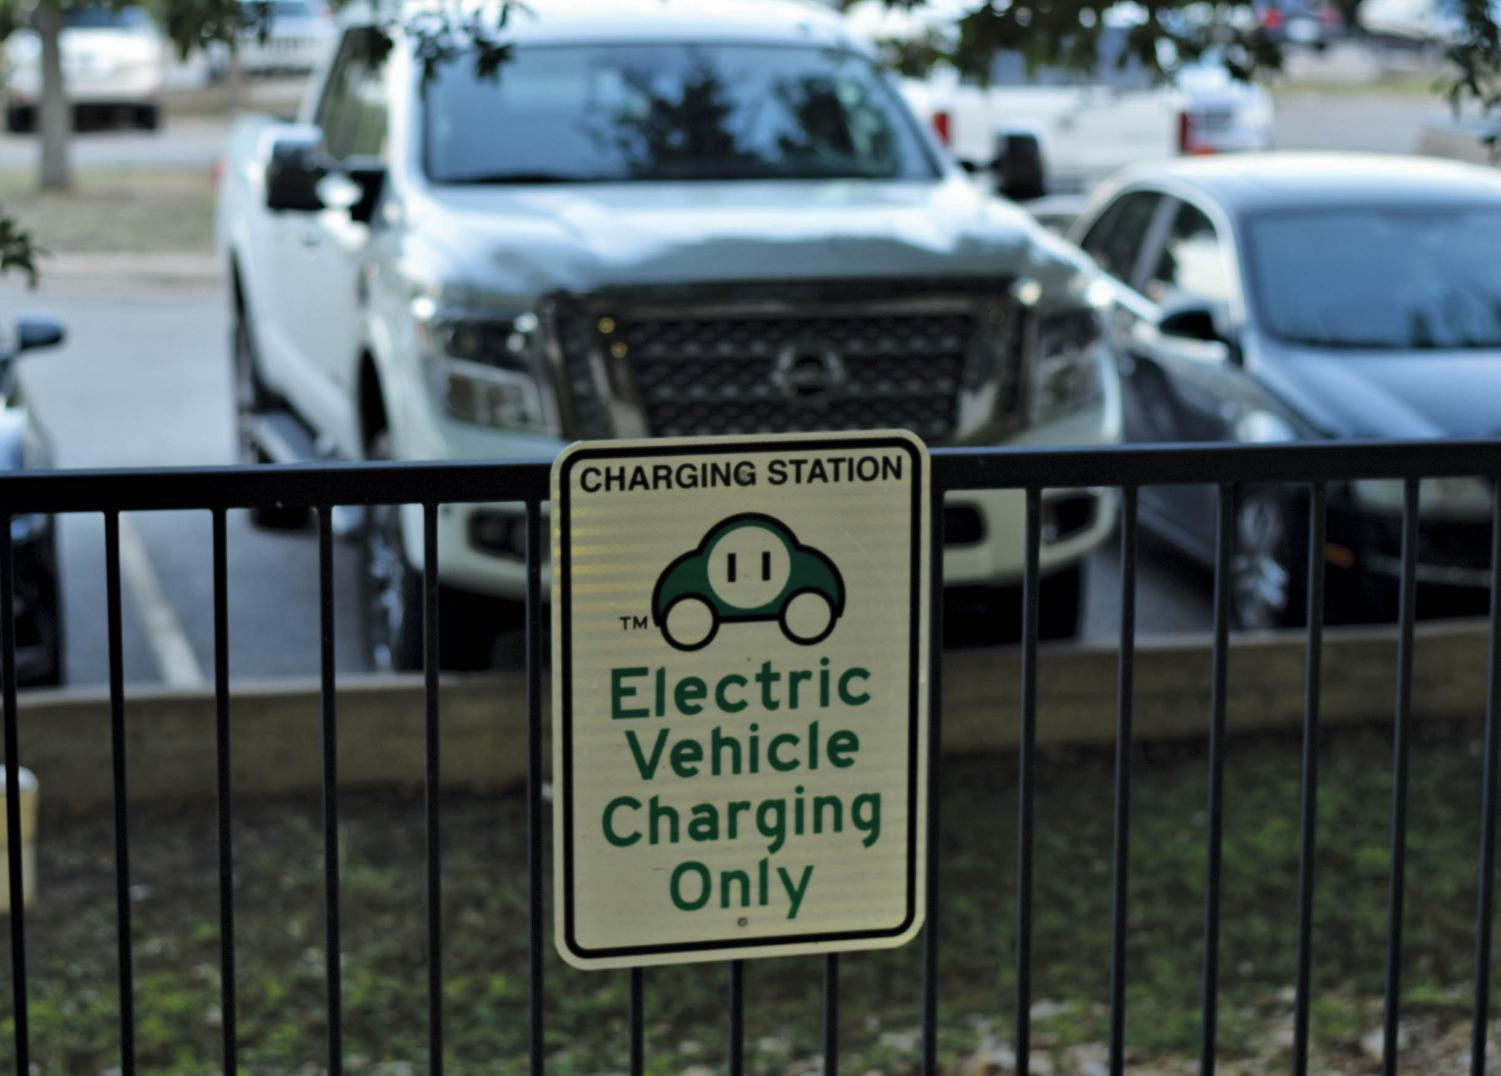 Electric vehicles produce an average of 4,450 pounds of carbon emissions, according to the U.S. Department of Energy. Traditional vehicles produce more than twice the amount of carbon annually.